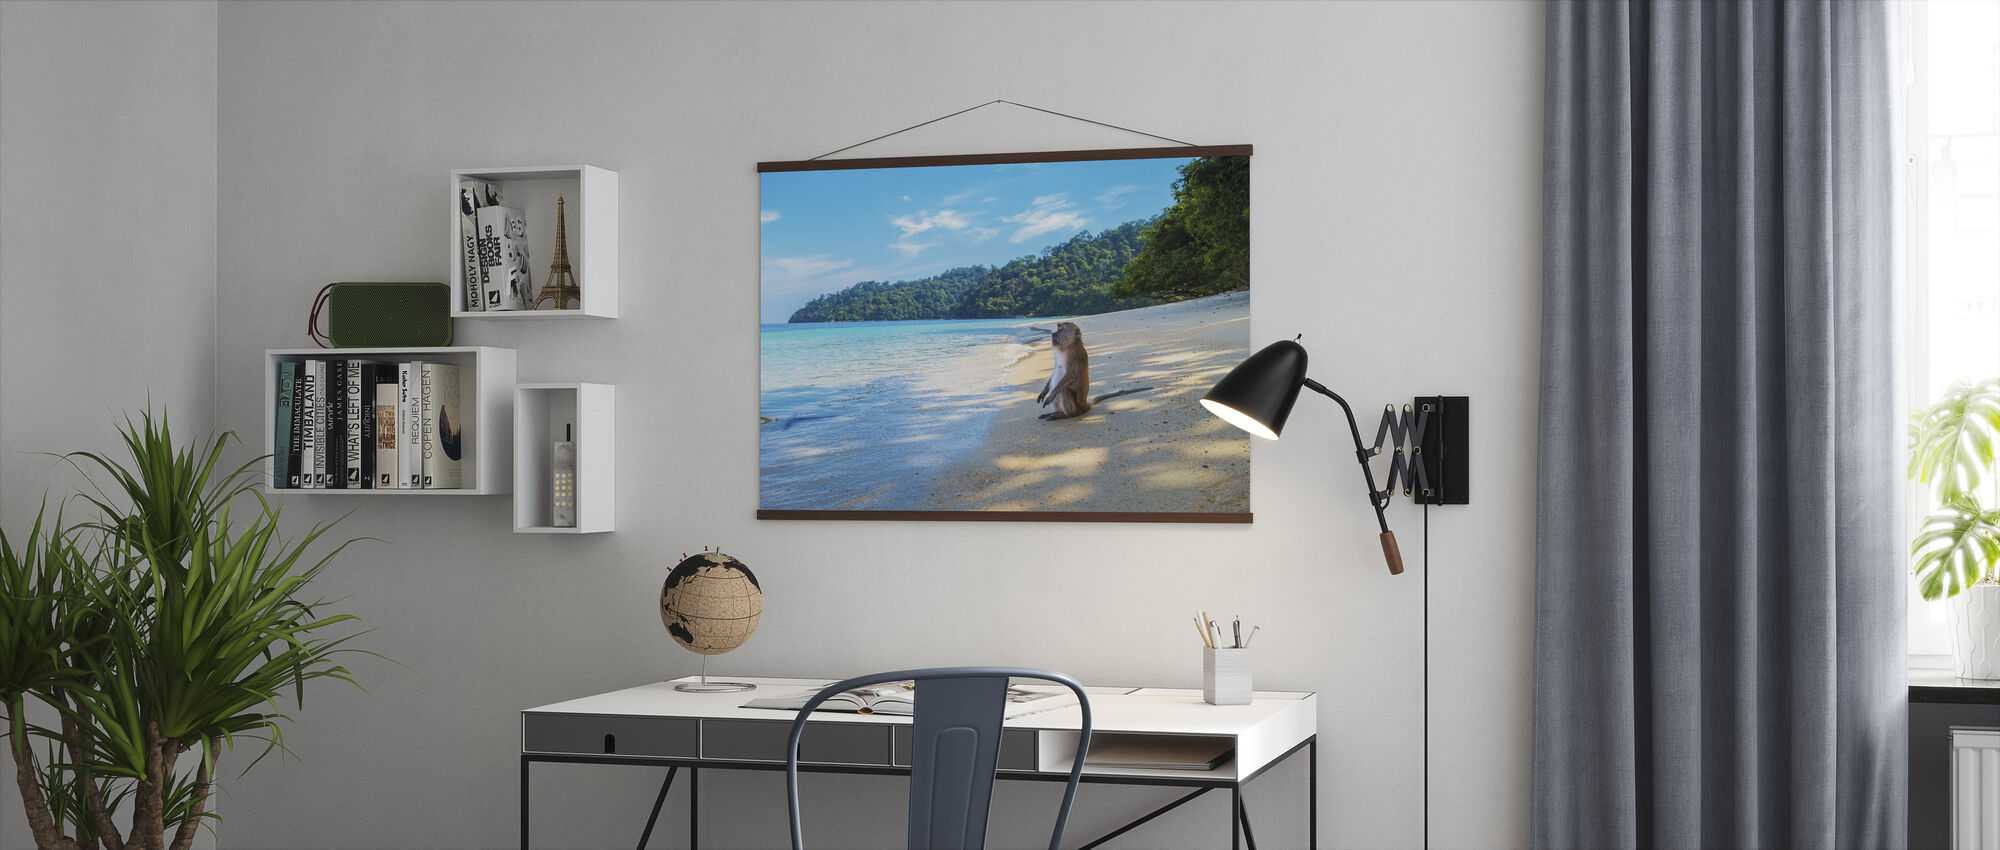 Monkey by the Beach - Poster - Office